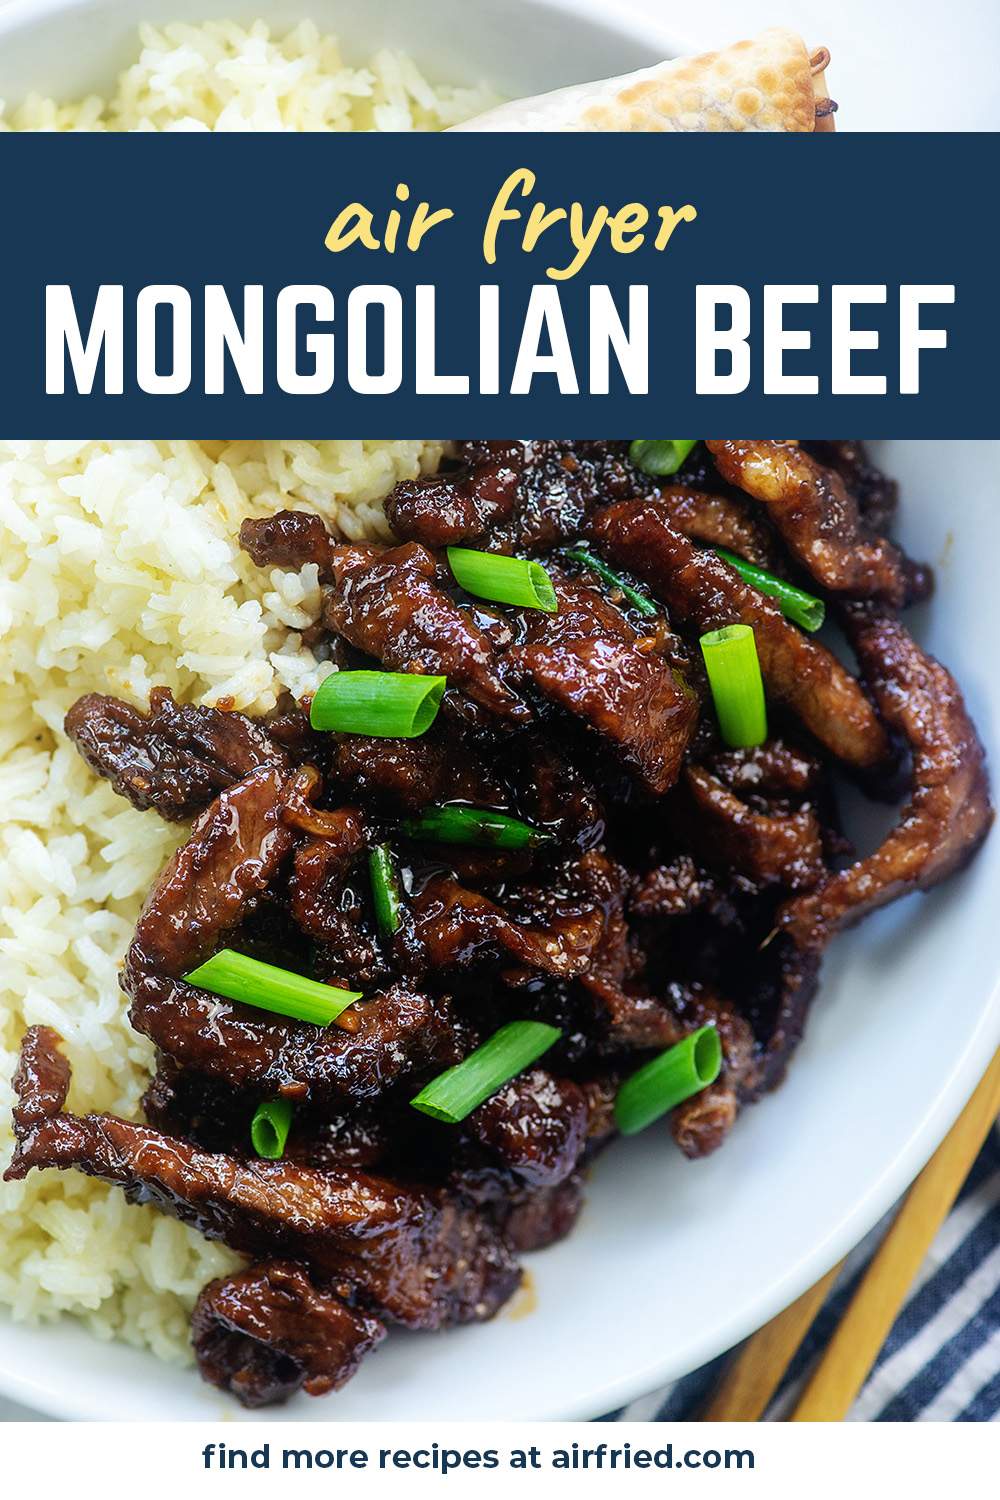 This Mongolian beef recipe is easy and clean to make! #airfryer #asiancuisine #dinnerrecipes